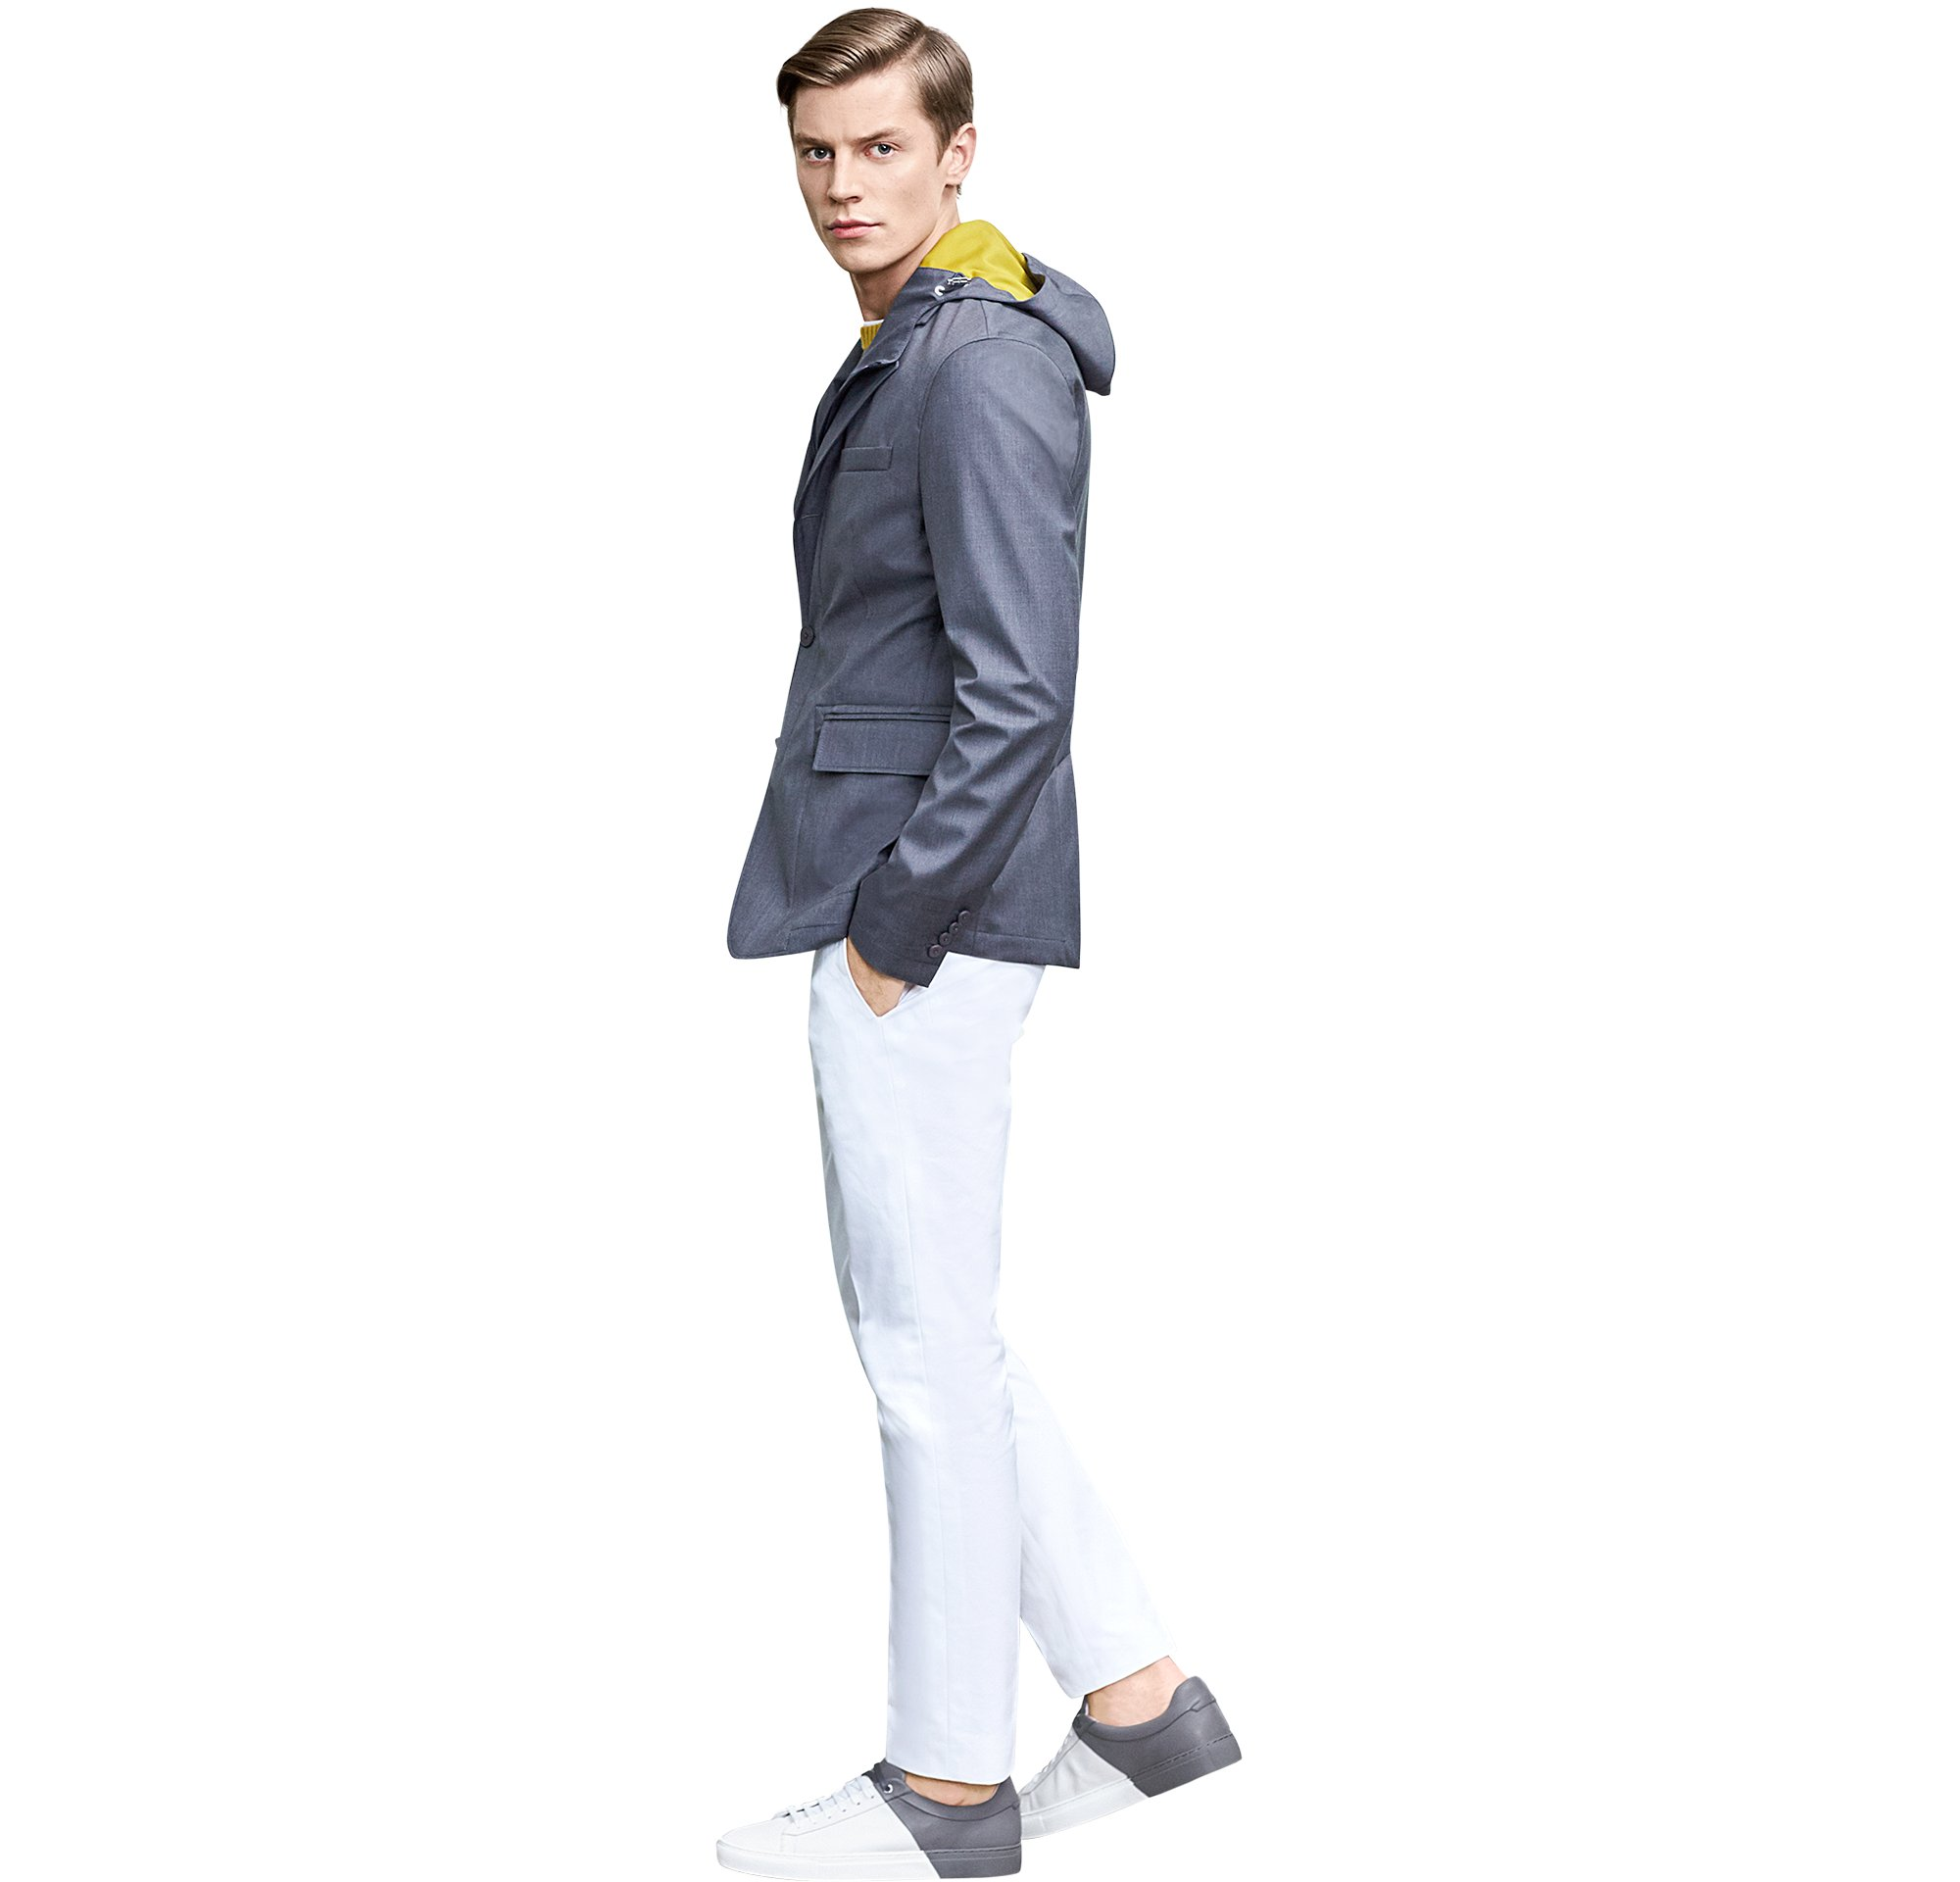 Grey jacket over jersey and knitwear with white jeans and sneakers by BOSS